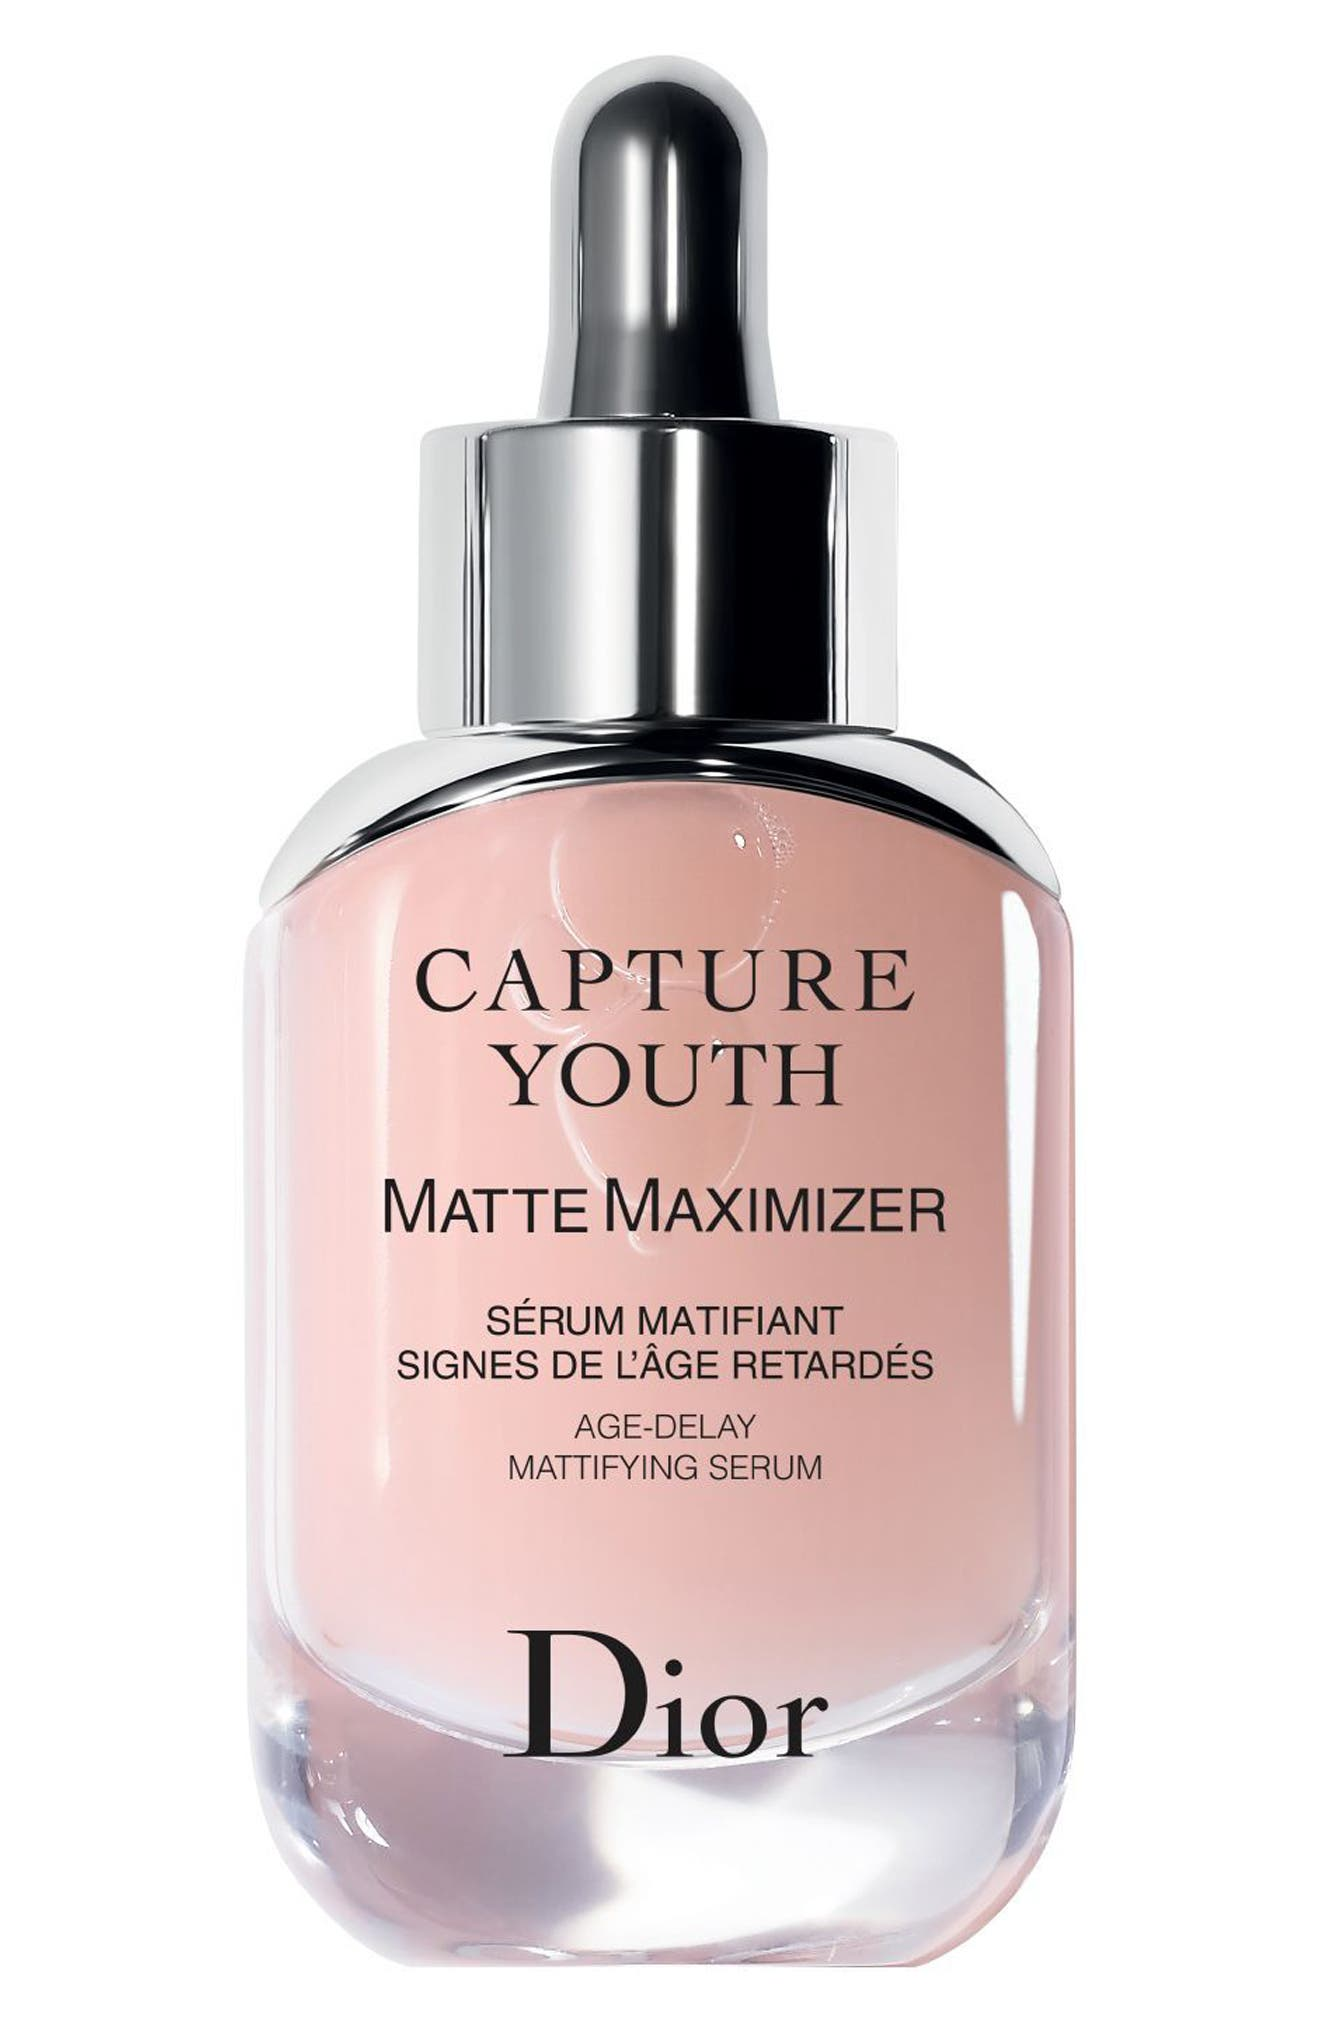 Capture Youth Matte Maximizer Age-Delay Mattifying Serum,                             Main thumbnail 1, color,                             NO COLOR